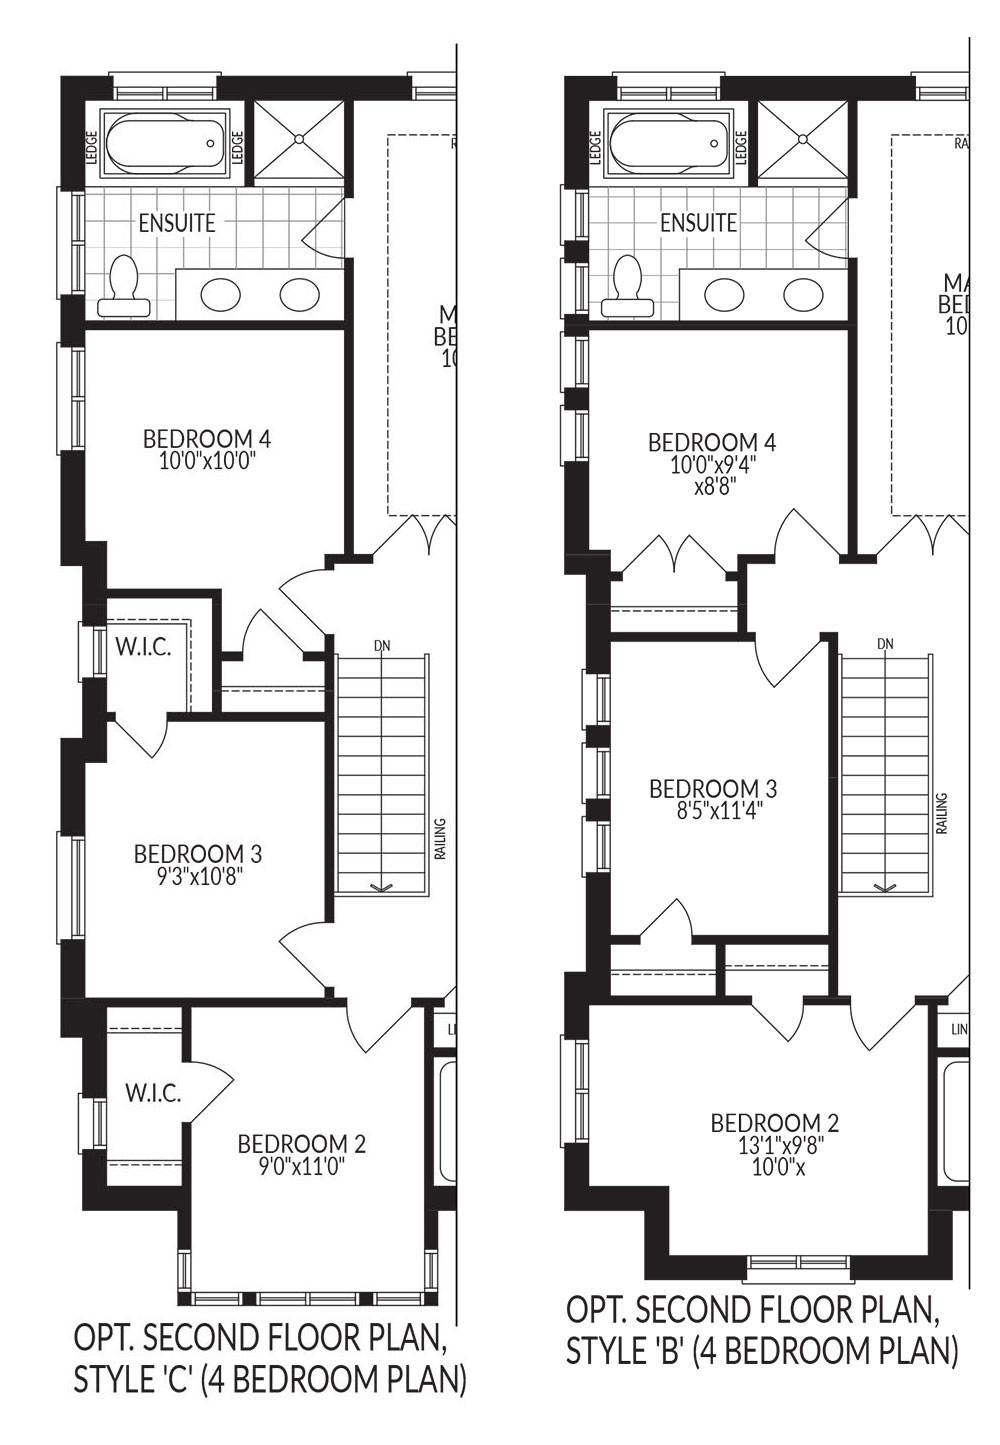 Optional Second Floor 4 Bed. Plan Style C + B